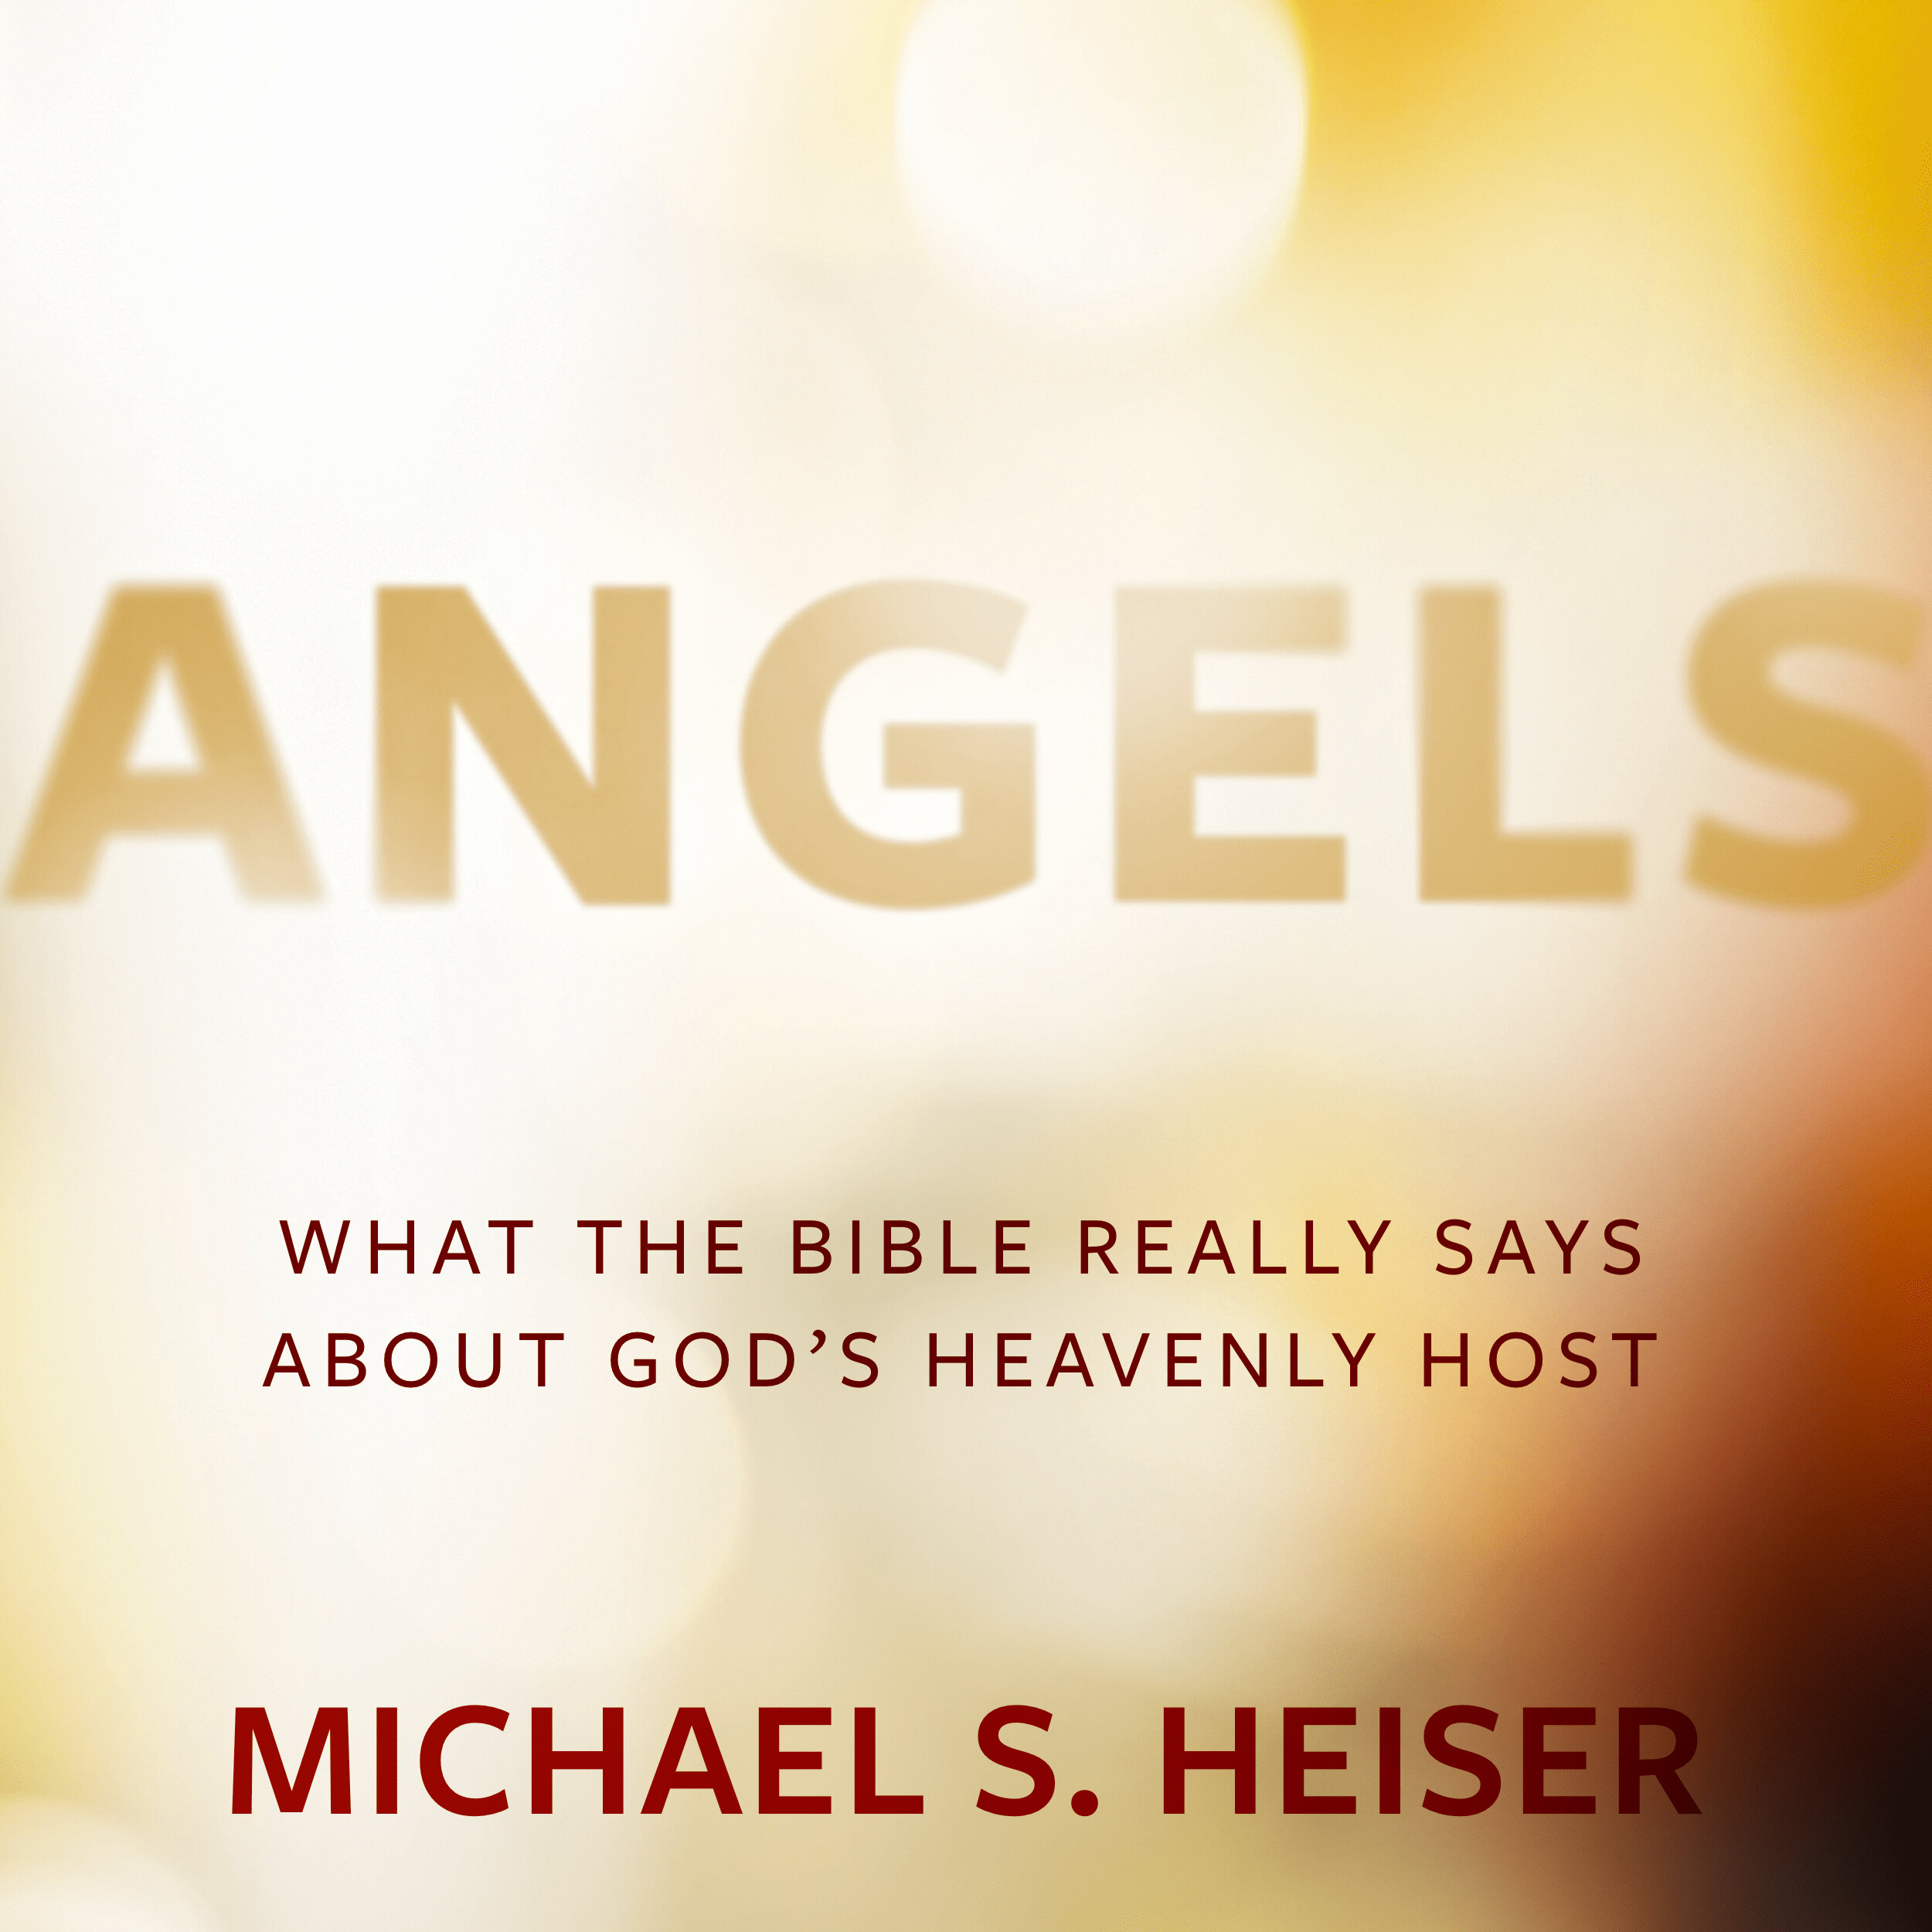 Angels: What the Bible Really Says about God's Heavenly Host (audio)